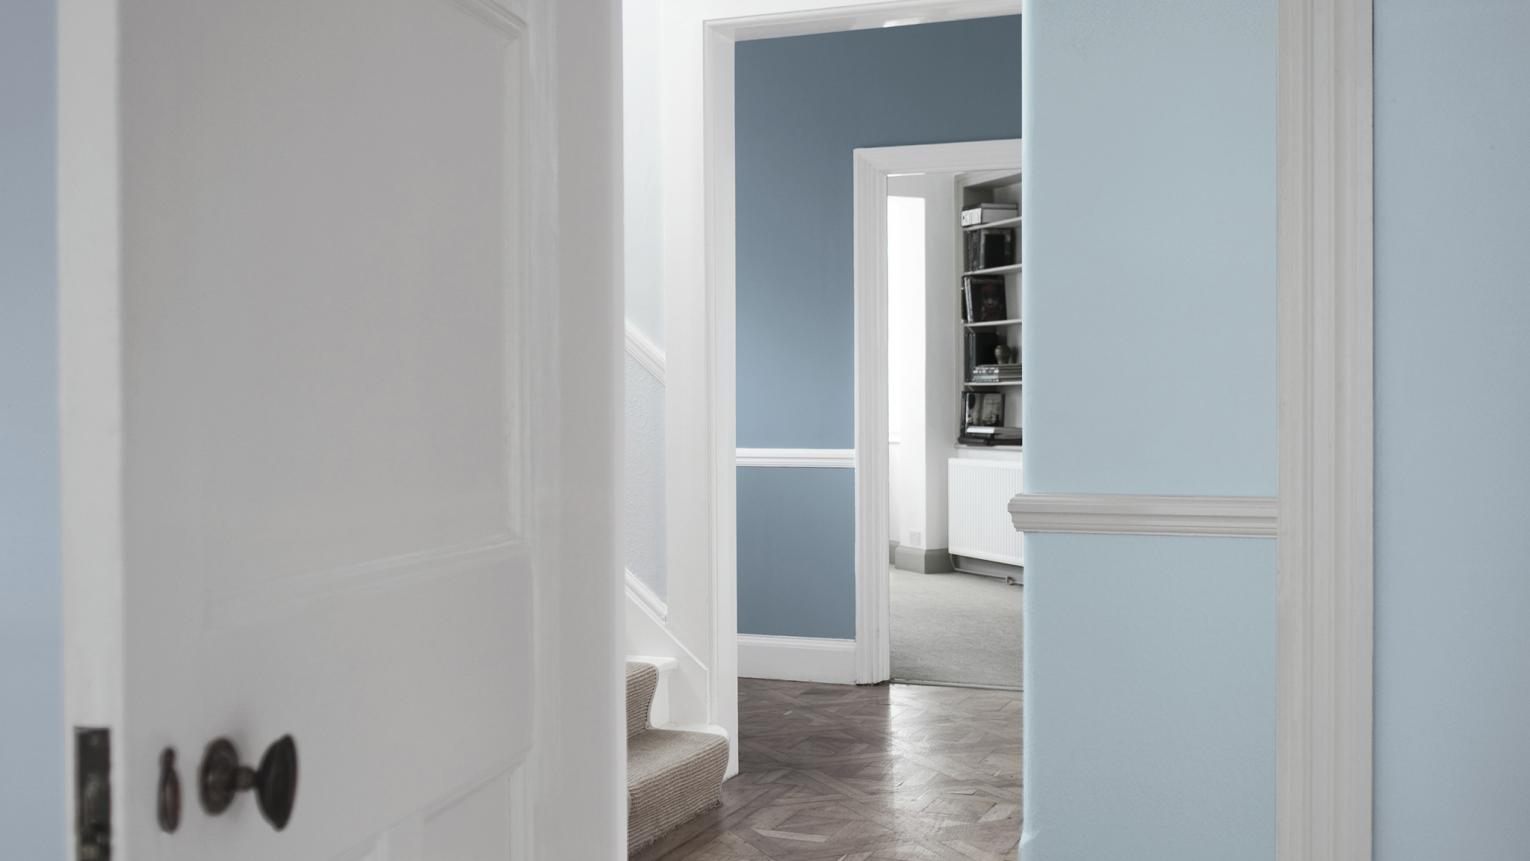 Add a touch of class with pale blue